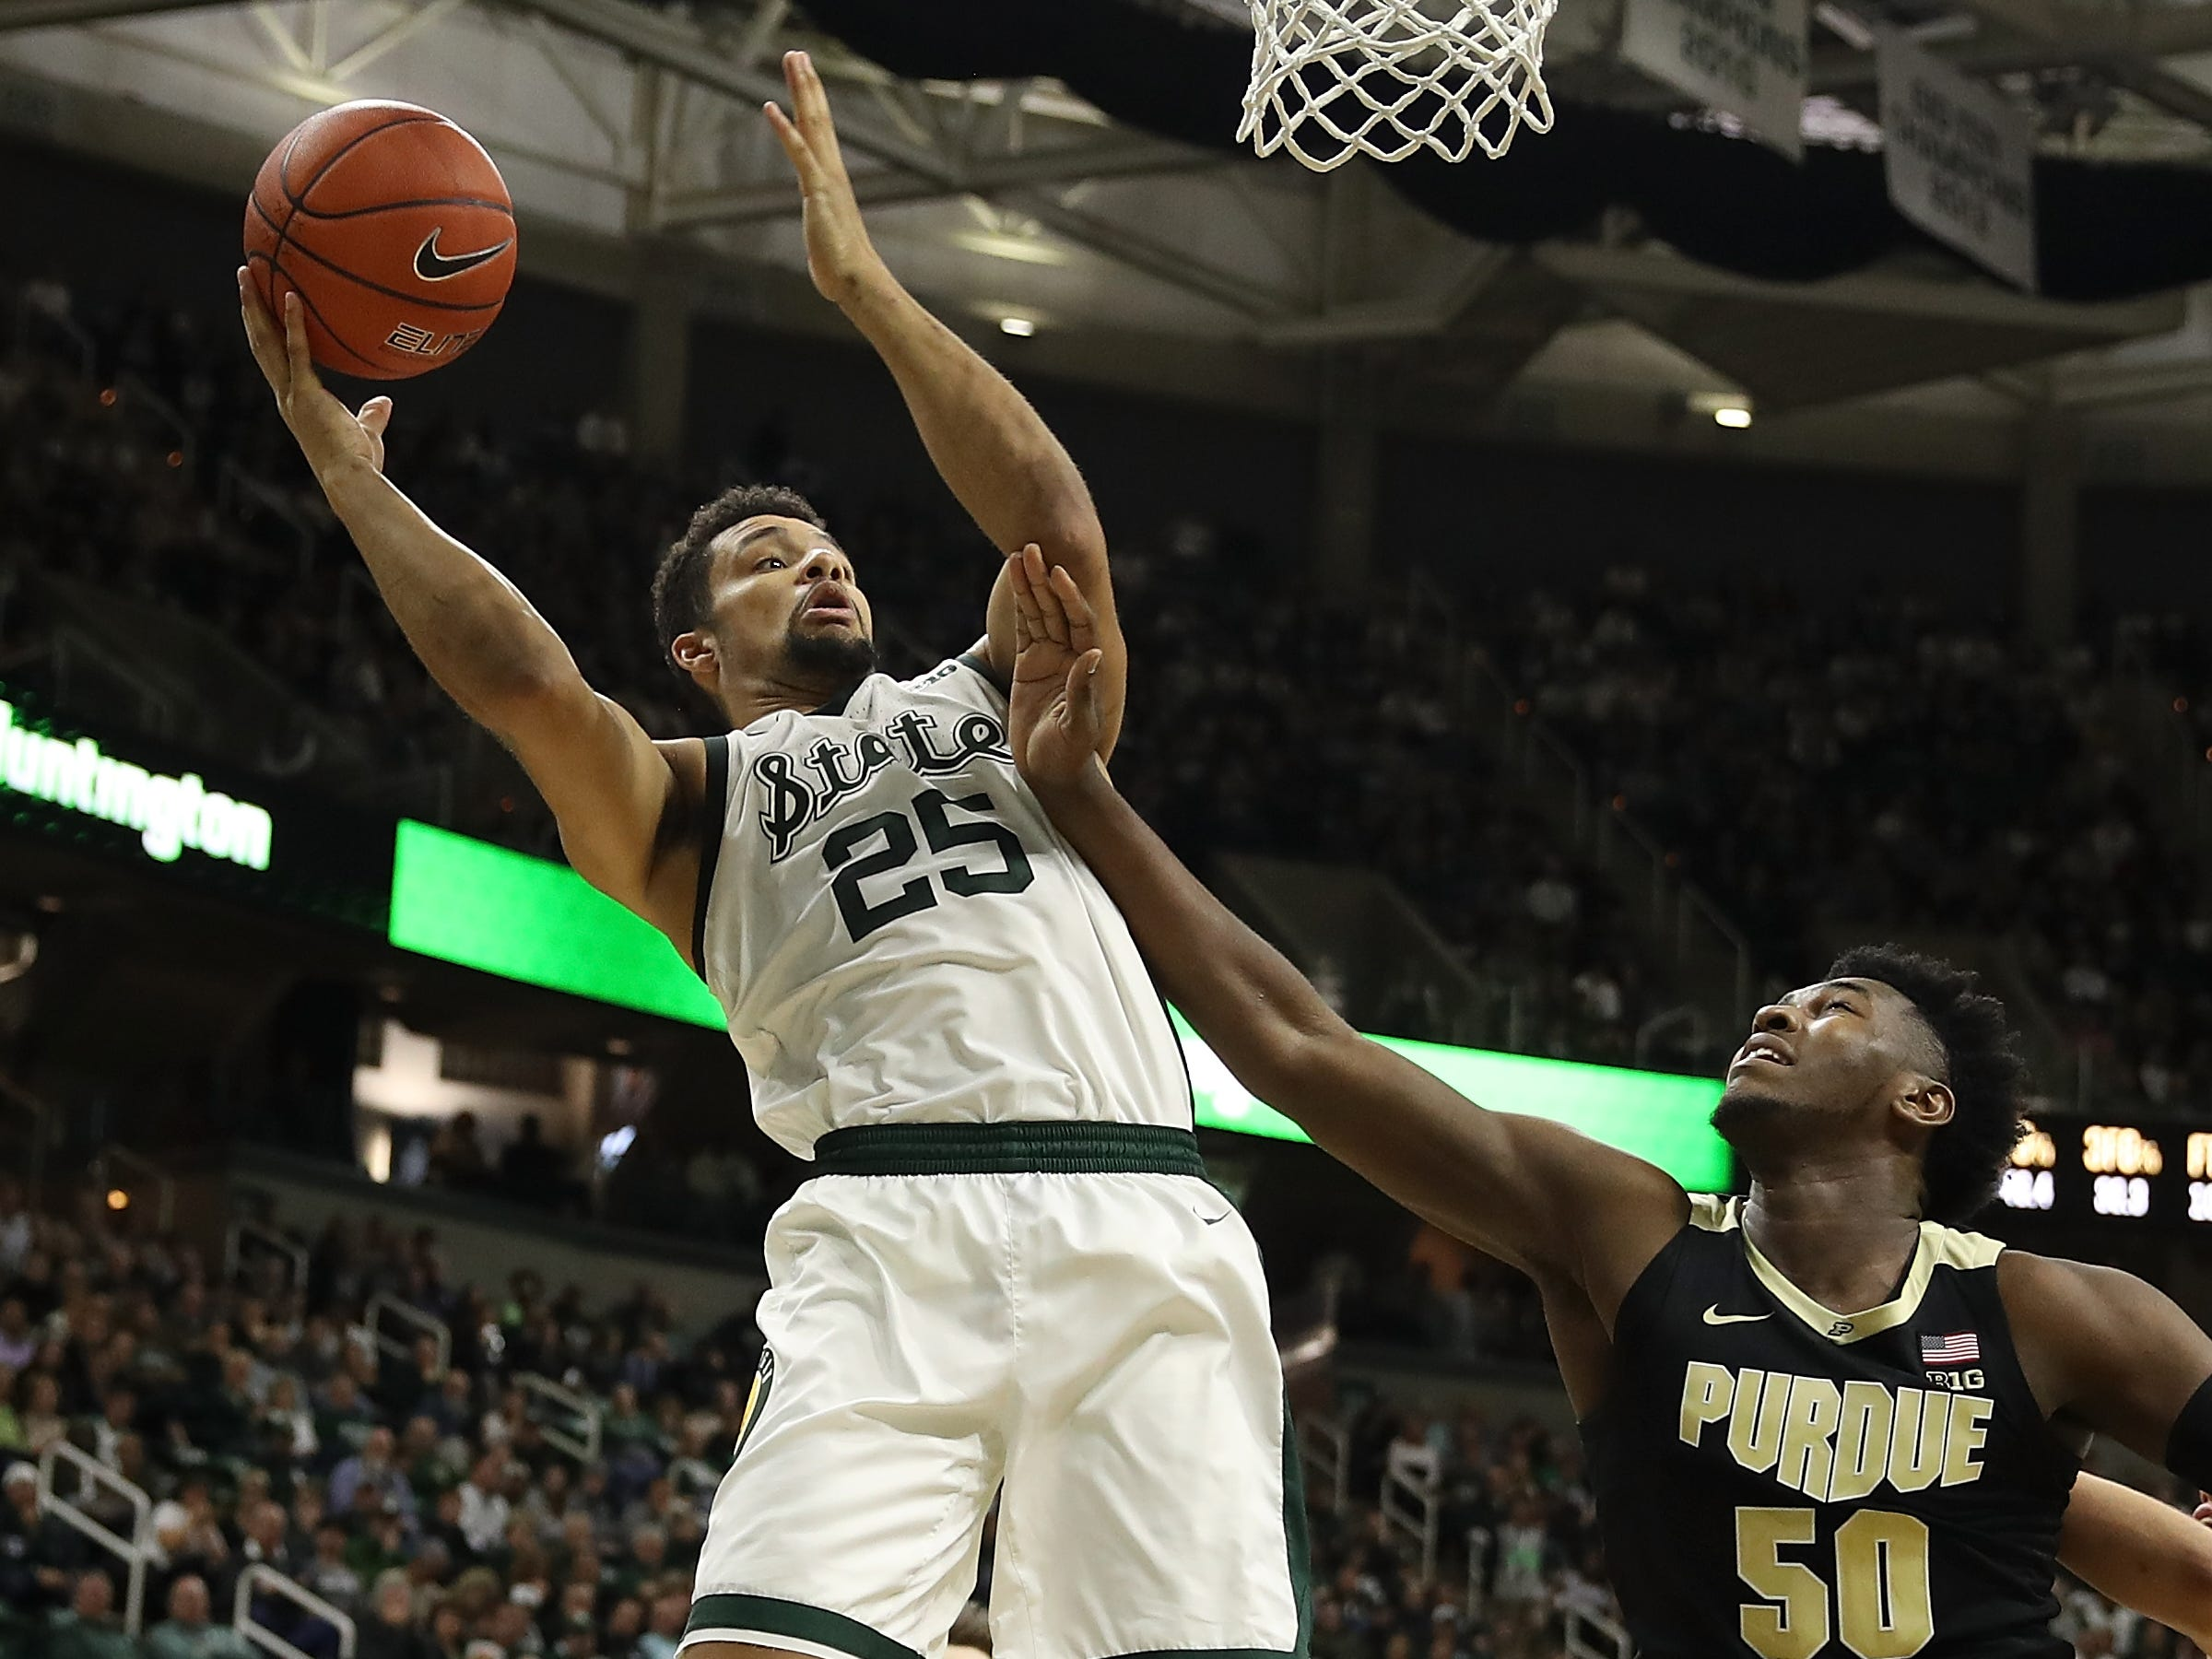 Kenny Goins #25 of the Michigan State Spartans gets a shot off next to Trevion Williams #50 of the Purdue Boilermakers during the first half at Breslin Center on January 08, 2019 in East Lansing, Michigan.